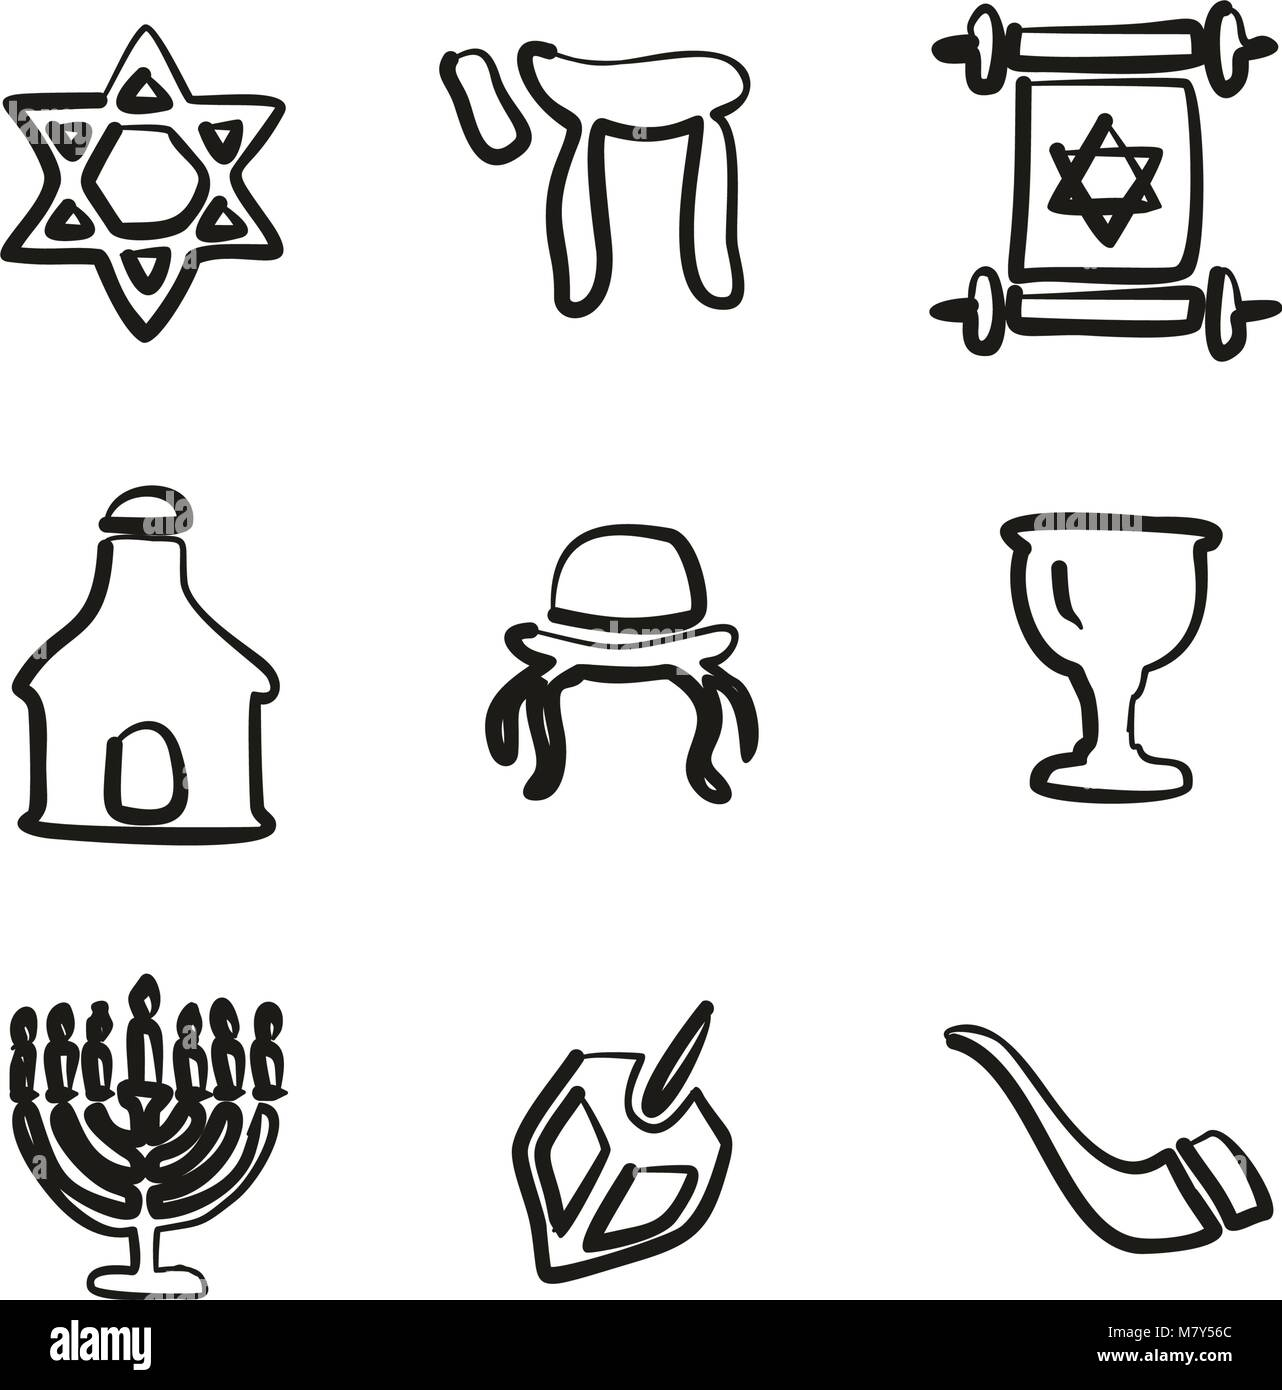 Journalist Or Reporter Icons Freehand - Stock Vector